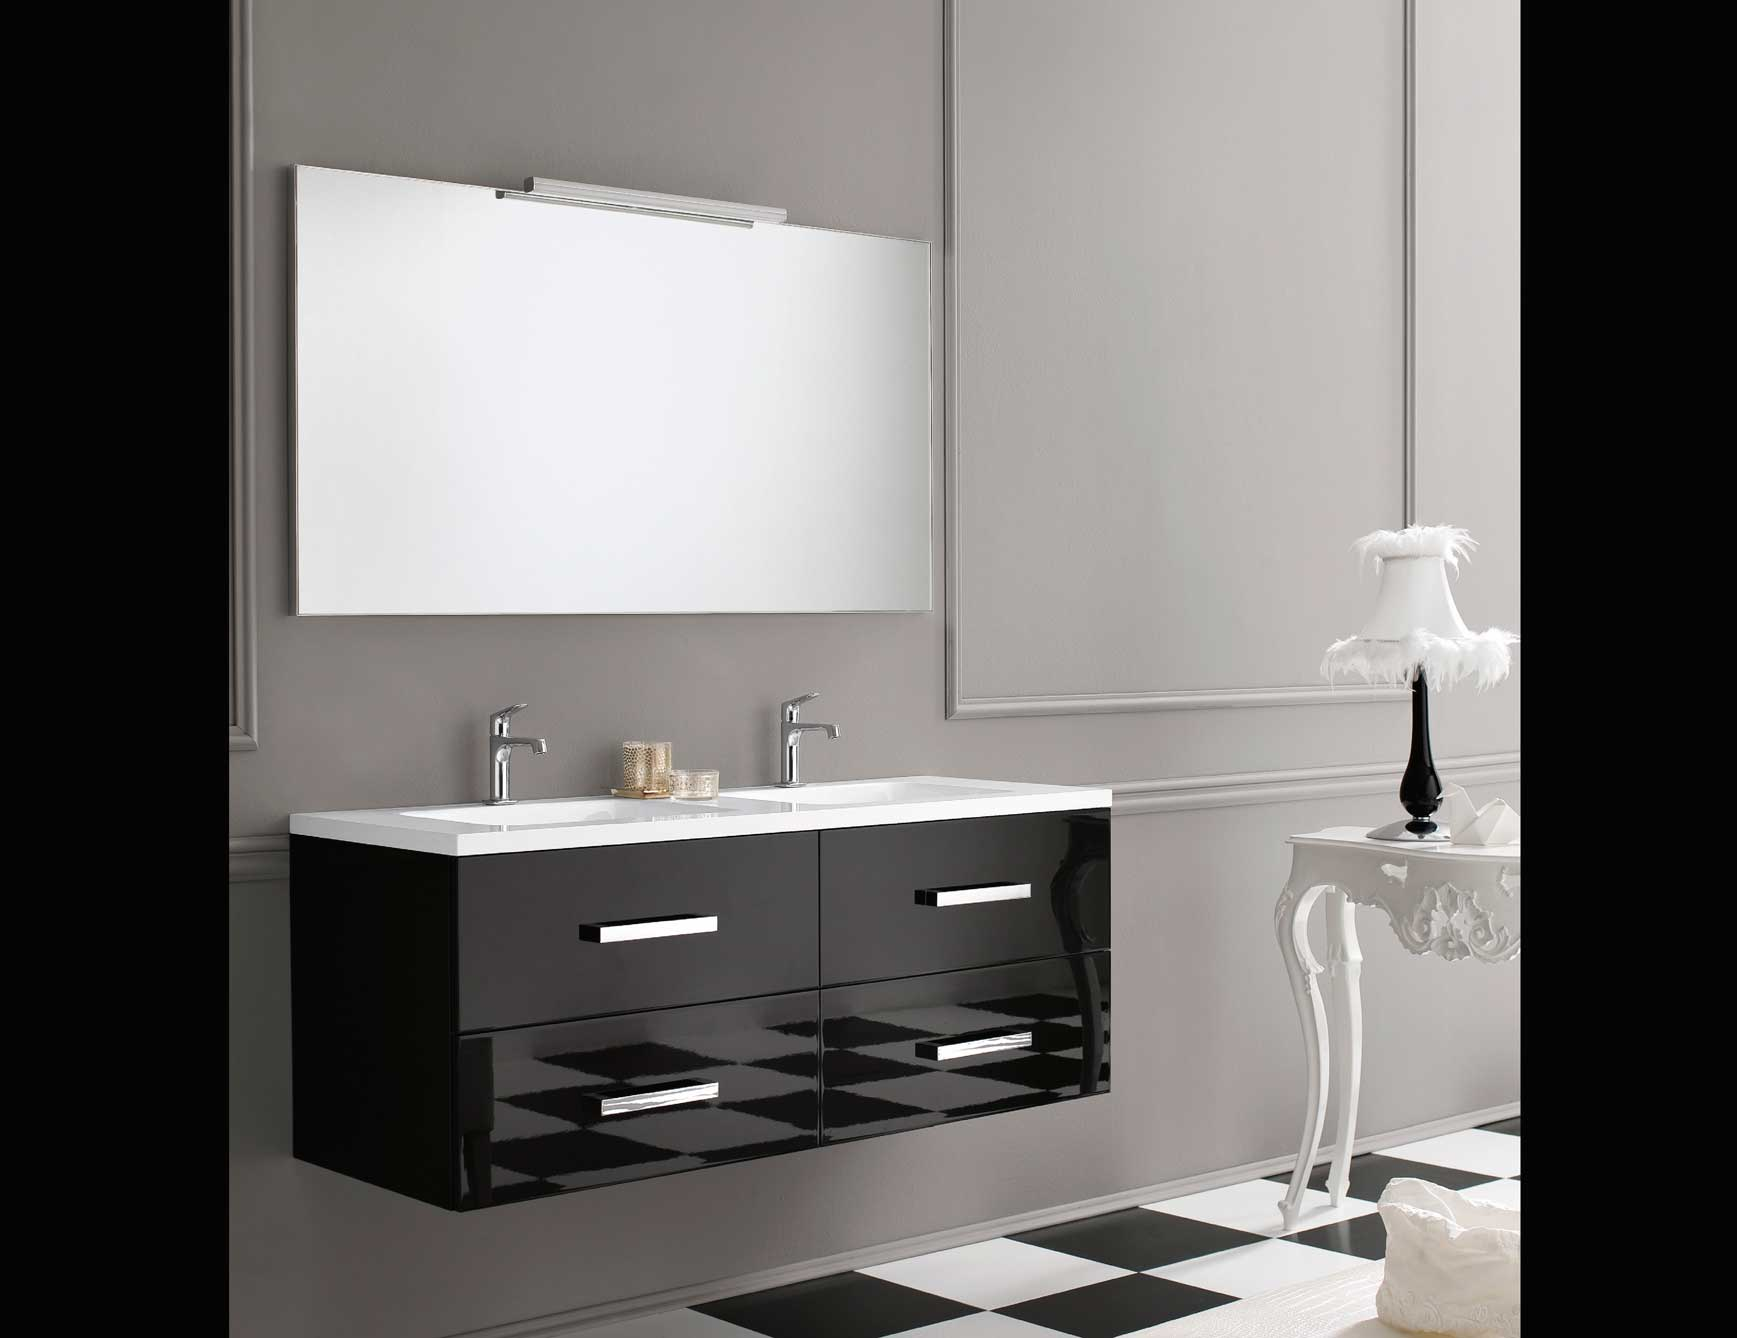 Modern Cabinet 10 Inspiring Modern And Luxury Bathrooms: 25 Amazing Italian Bathroom Tile Designs Ideas And Pictures